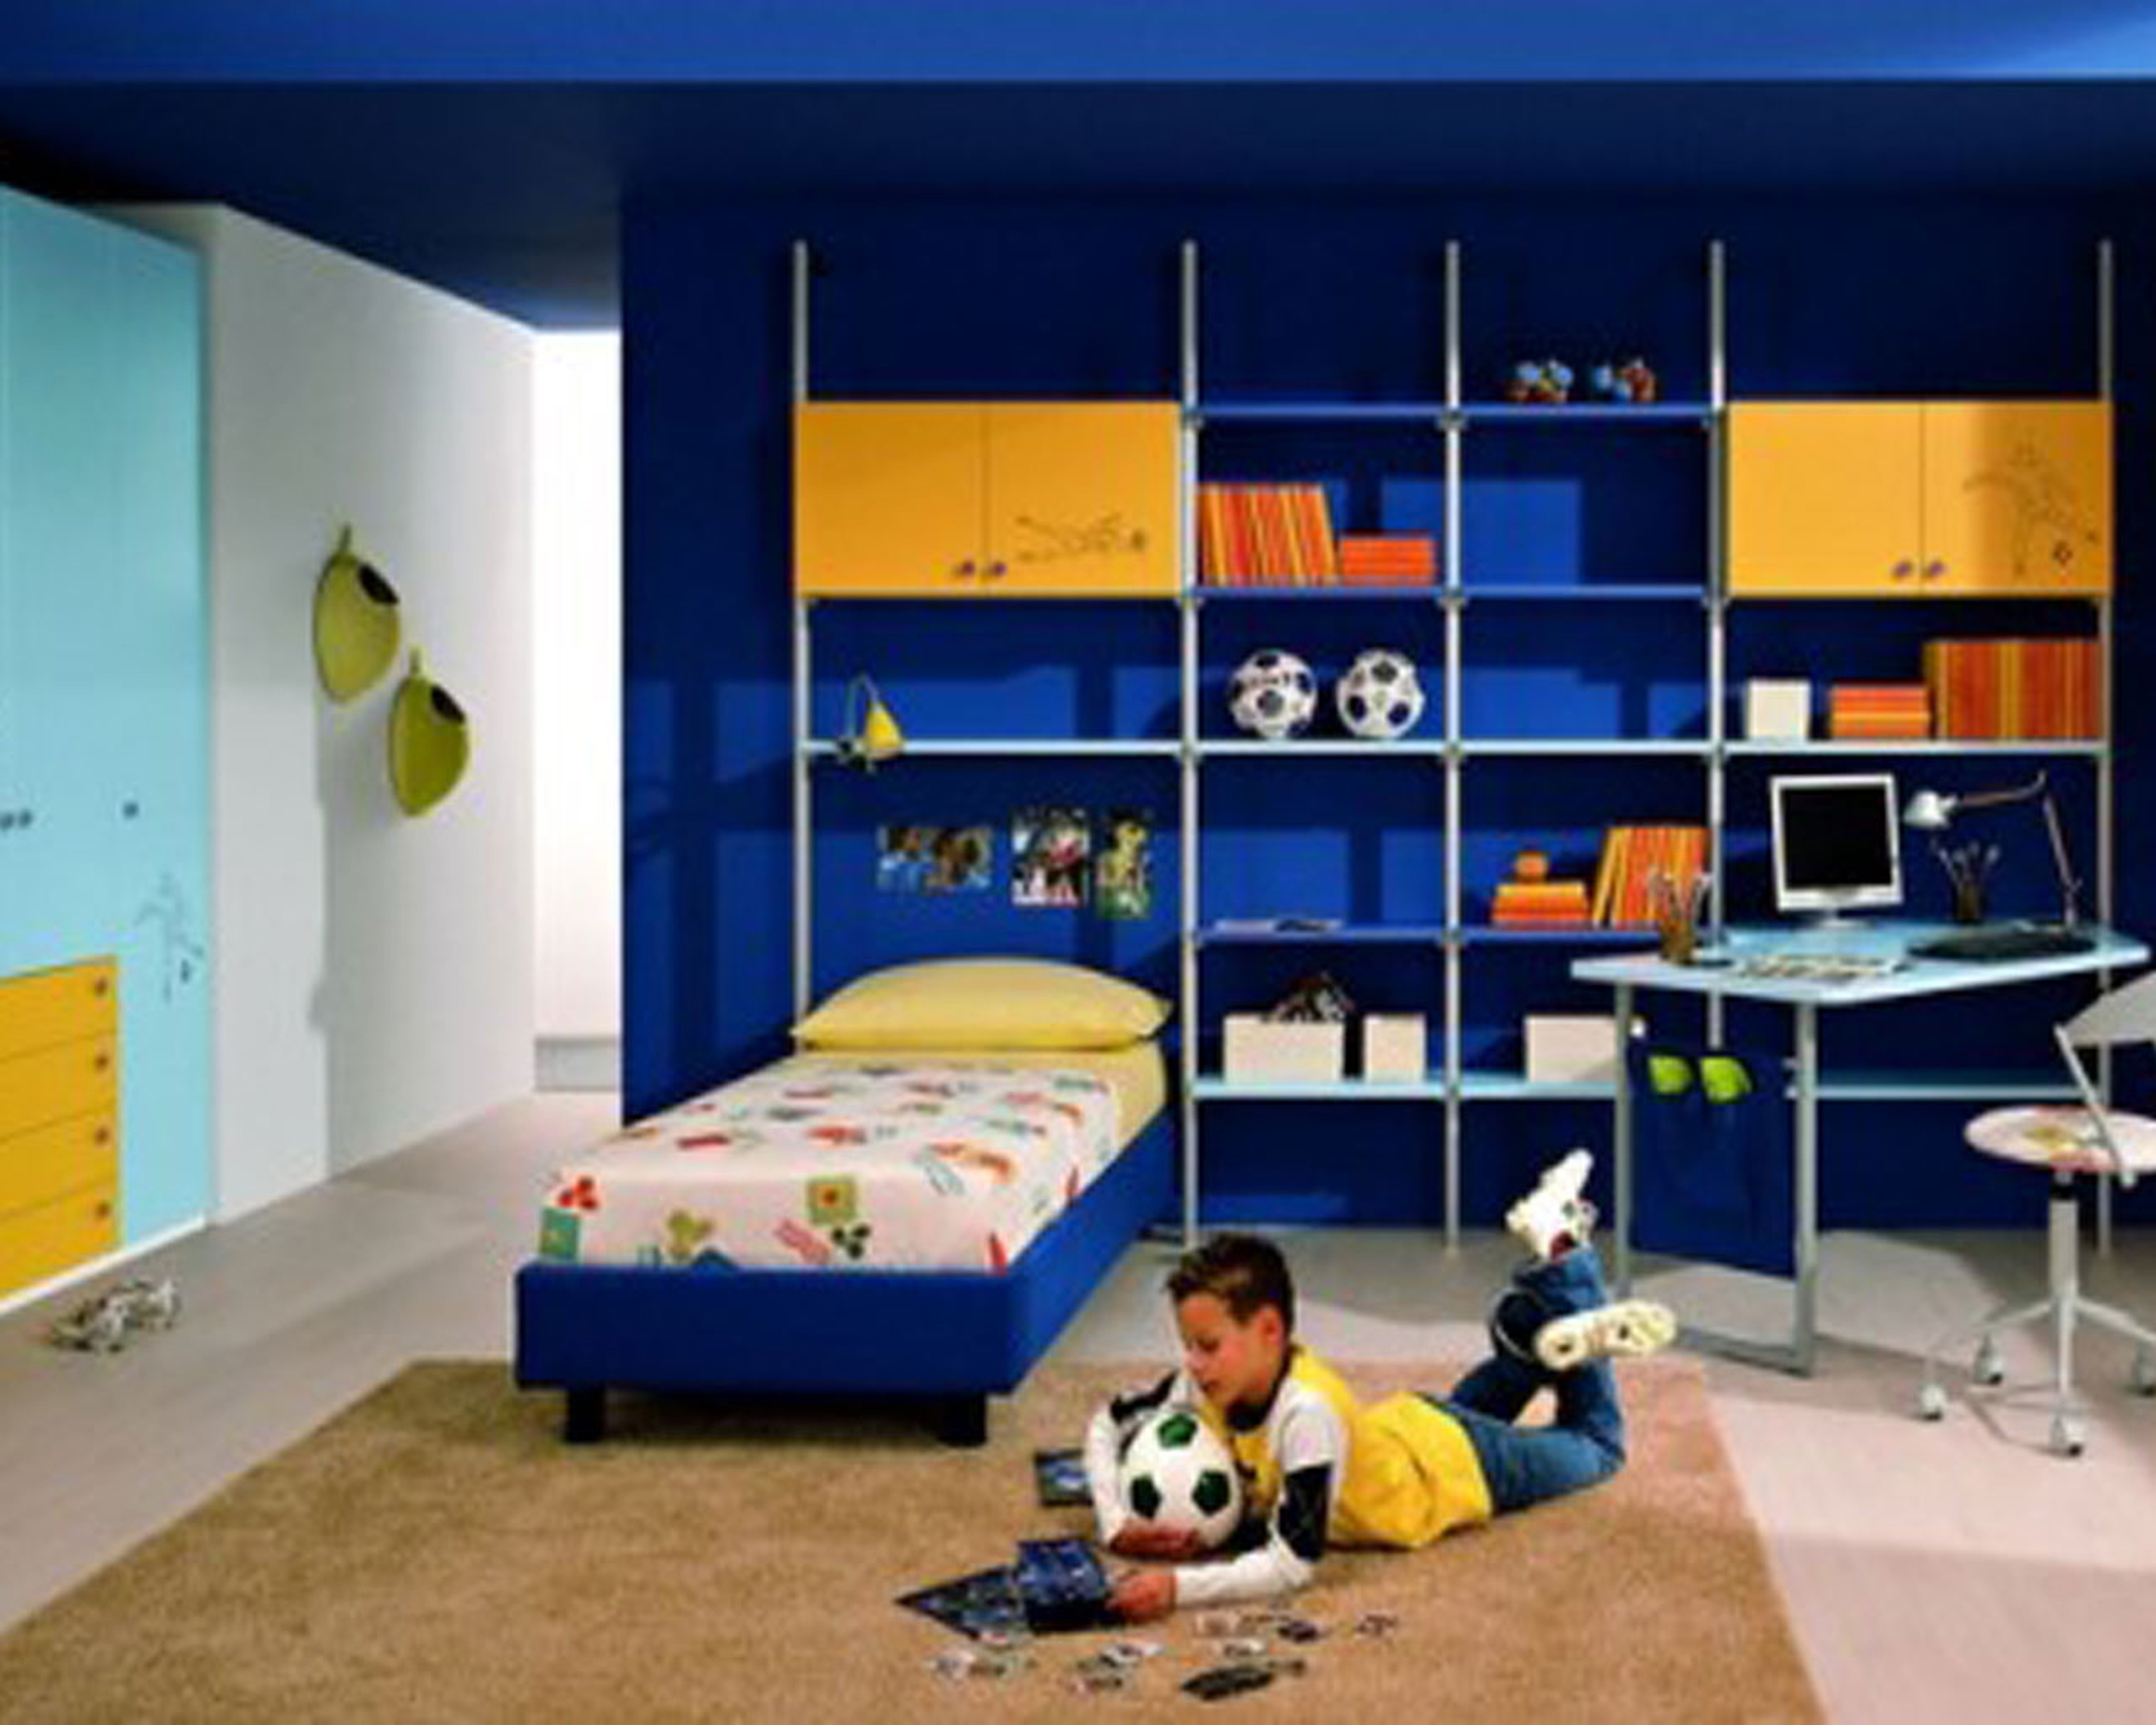 Kids Bedroom Comfortable Boys Bedroom Decoration Idea With Light Brown Rug Whitebed Sheet With Yellow Pillows And White Table With Computer Impressive Boys Bedroom Decoration Ideas (View 21 of 28)